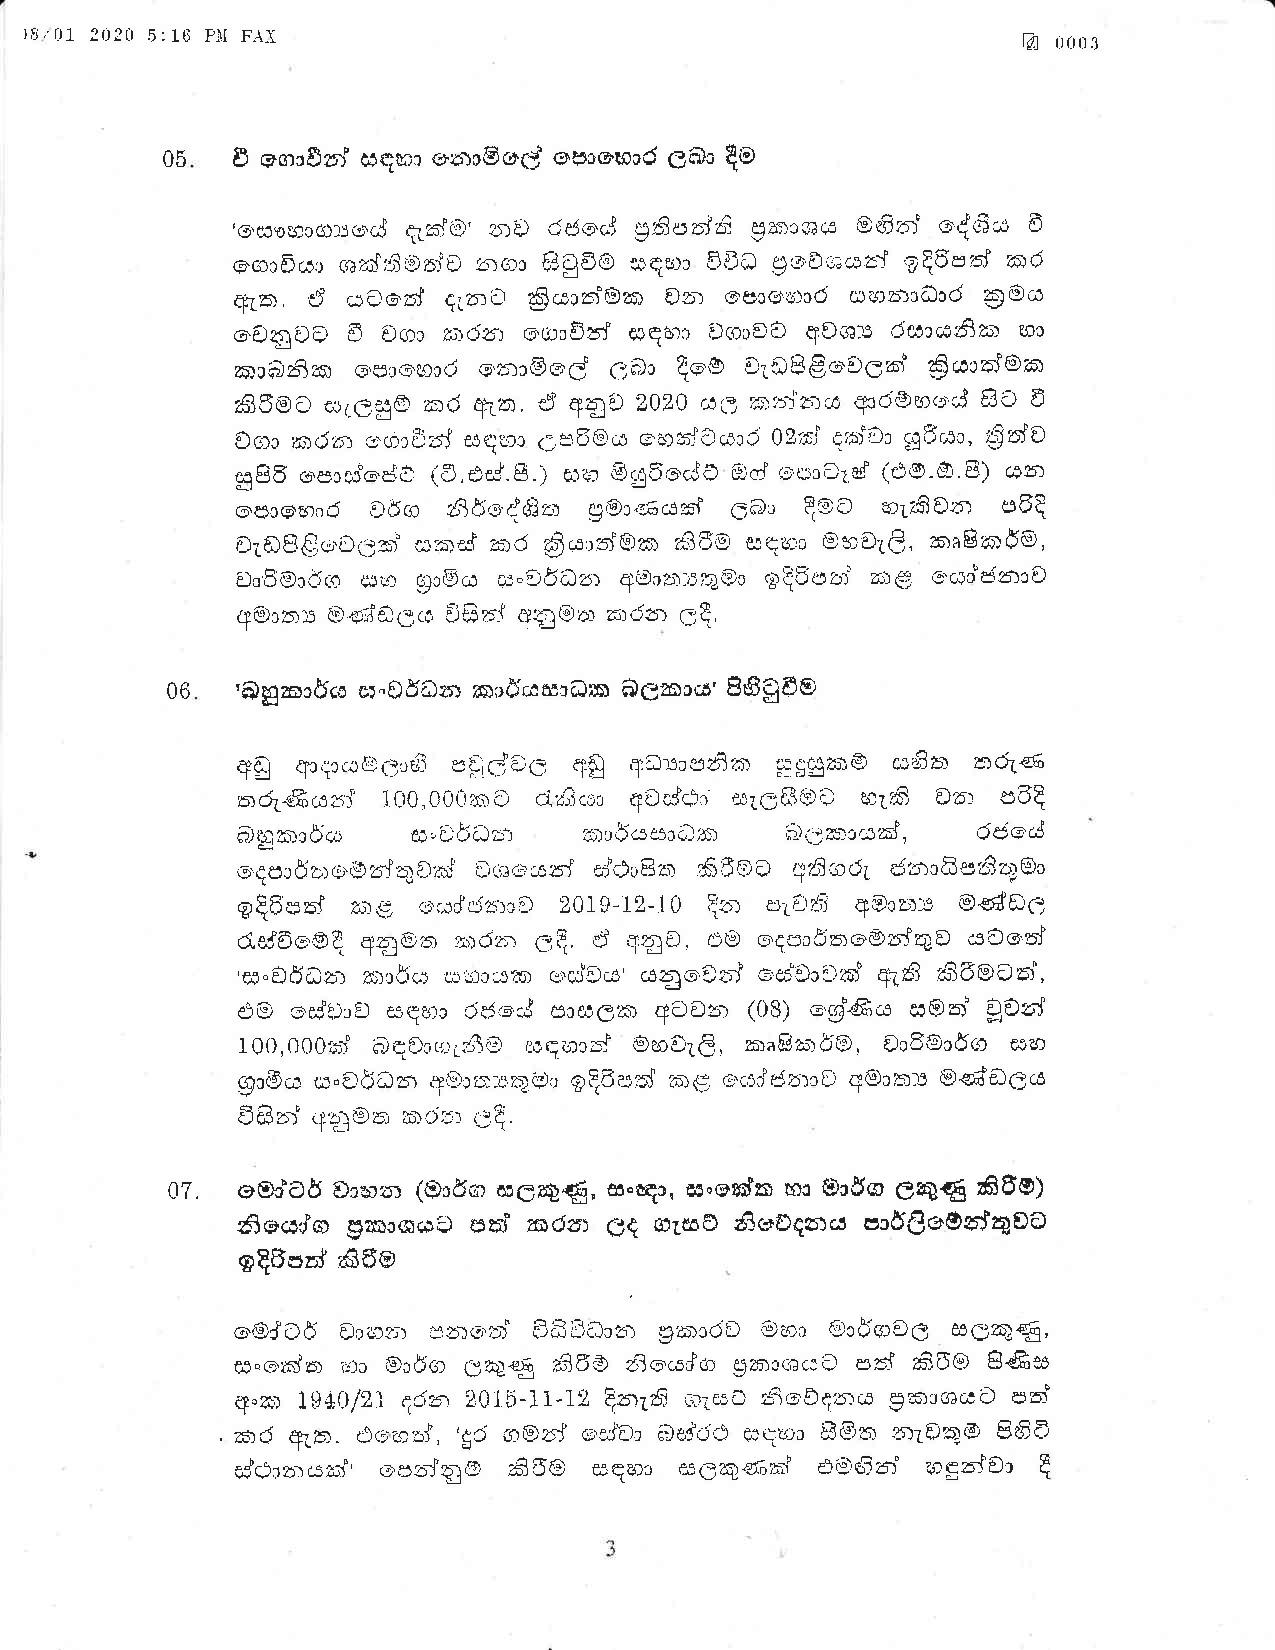 Cabinet Decision on 08.01.2020 page 003